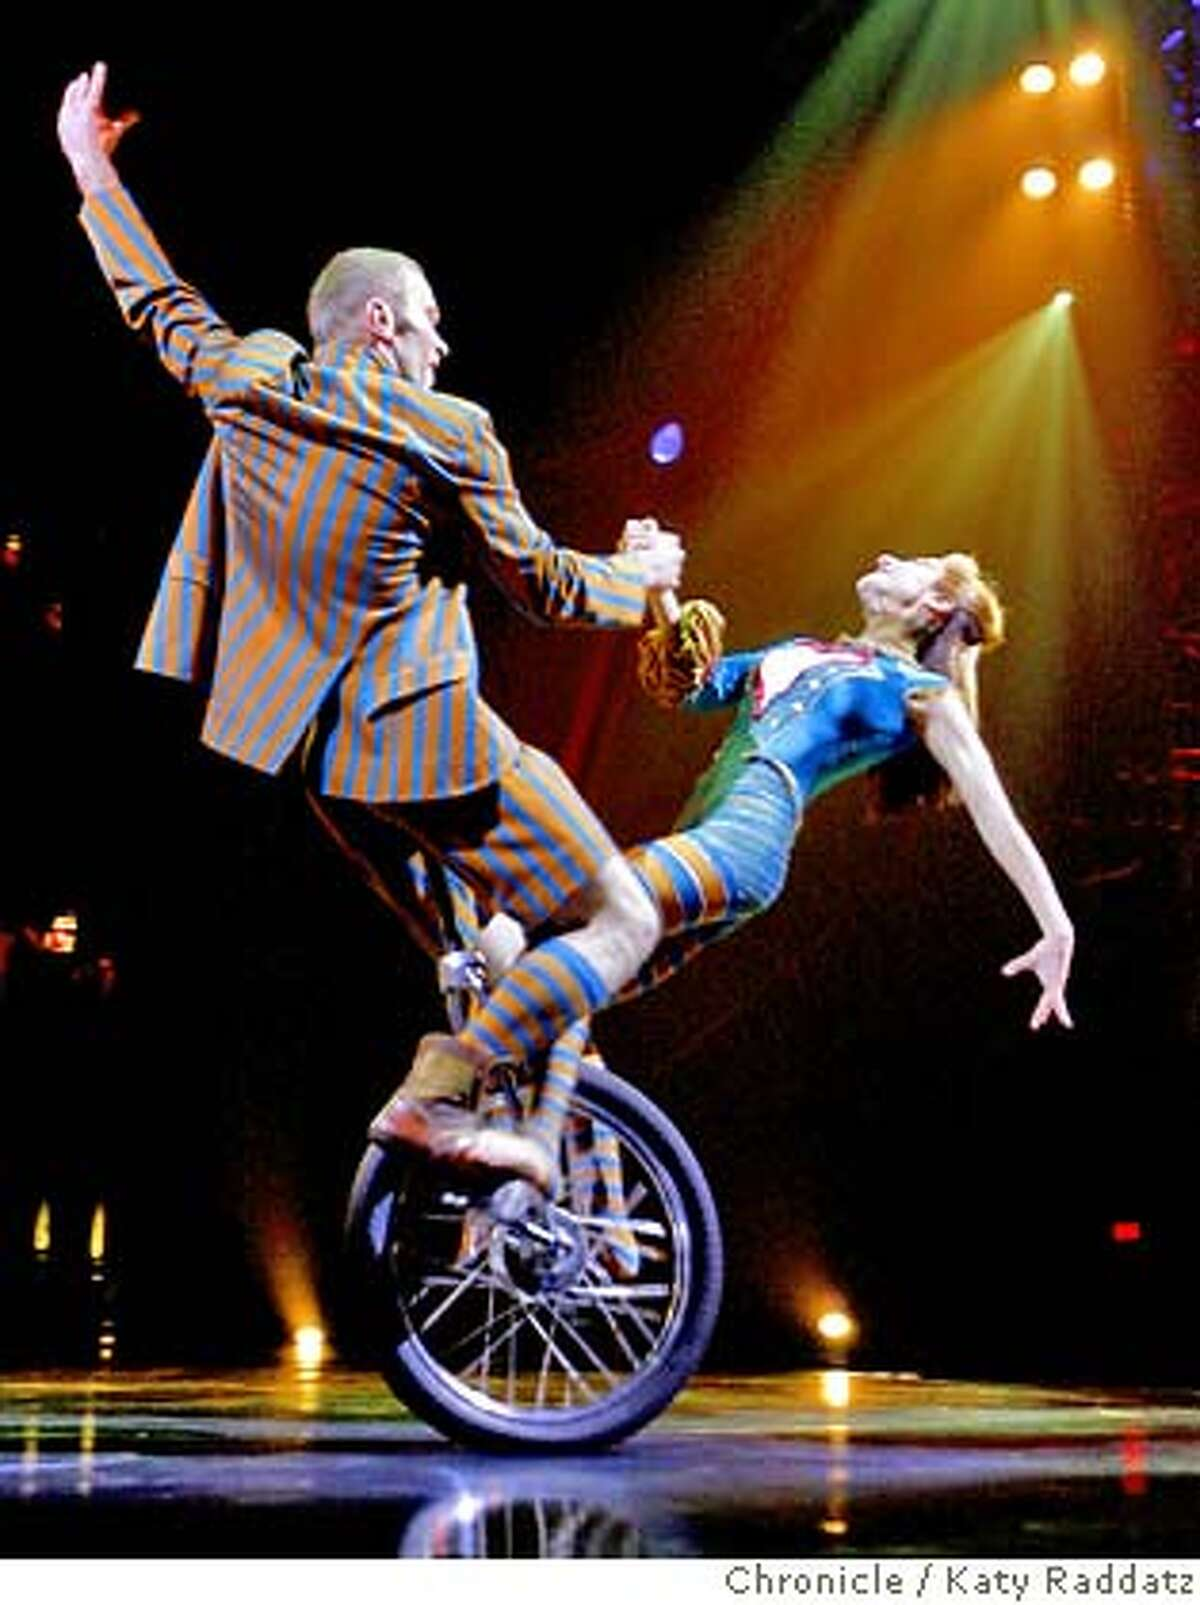 KOOZA19 Yury Shavro and Diana Aleshchenko perform the Duo Unicycle at the dress rehearsal of Cirque du Soliel. The name of the performance is Kooza. These pictures were made on Thursday Nov.15, 2007, in San Francisco, CA. KATY RADDATZ/The Chronicle Photo taken on 11/15/07, in San Francisco, CA, USA